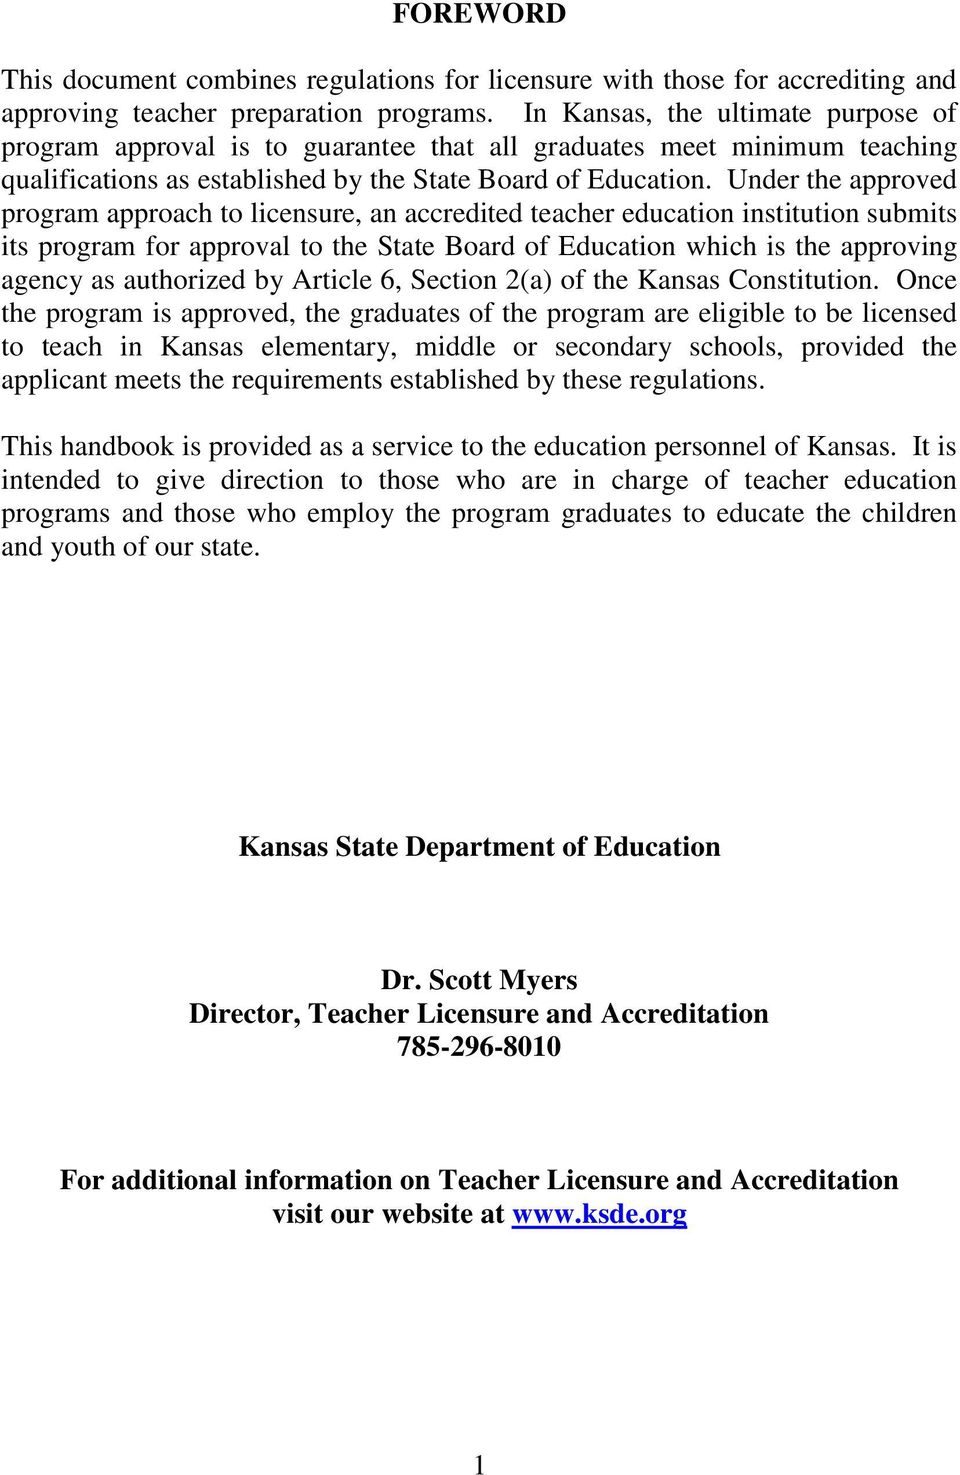 Under the approved program approach to licensure, an accredited teacher education institution submits its program for approval to the State Board of Education which is the approving agency as